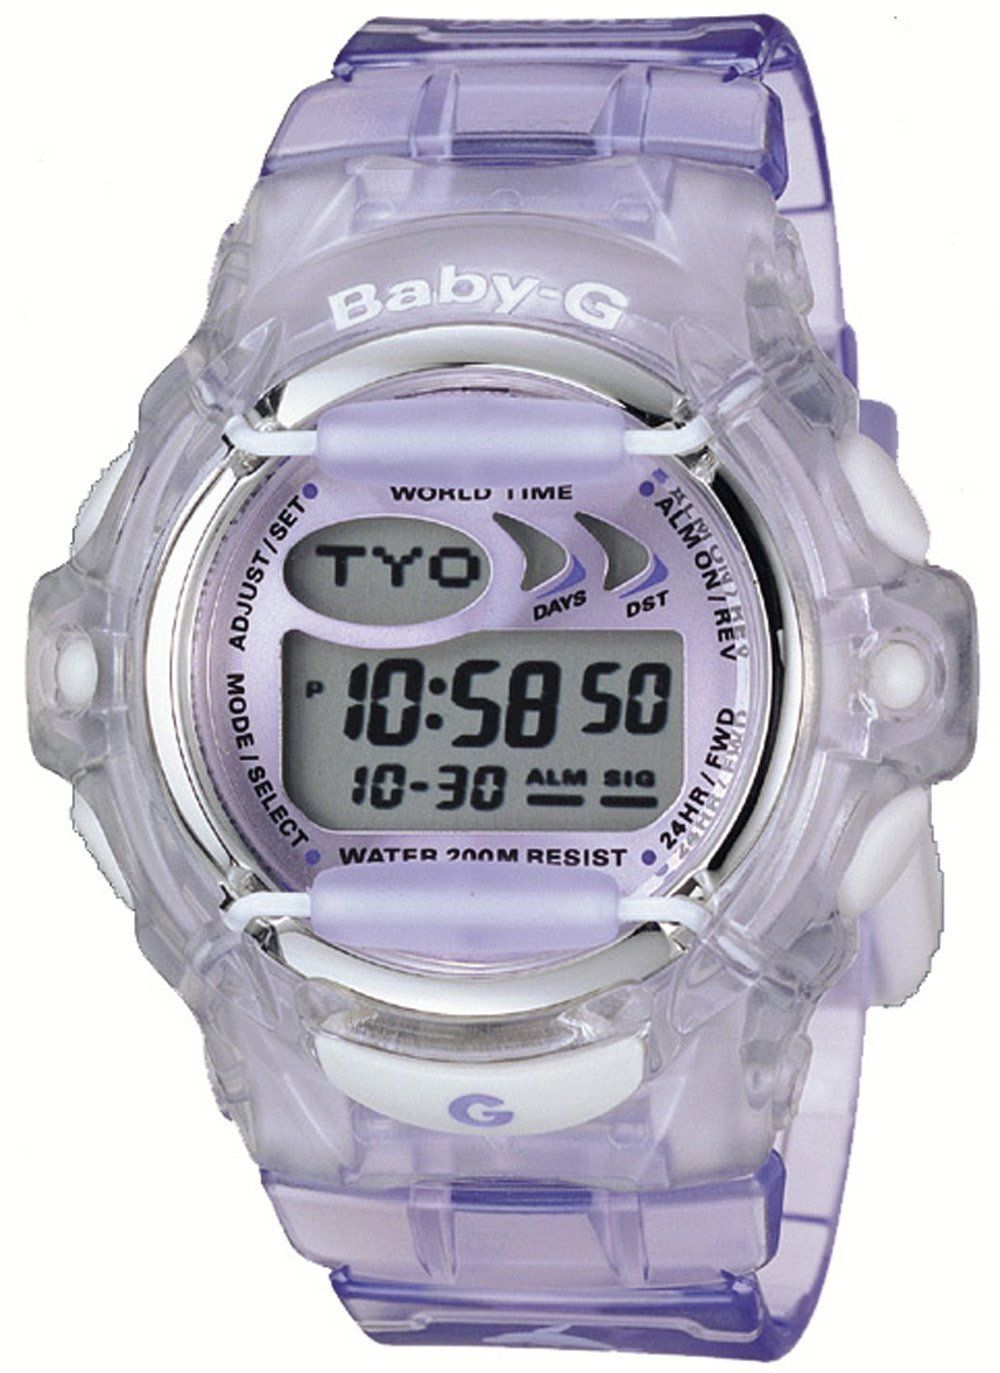 Casio Women S Bg169 6v Baby G Purple Jelly Shock Resistant Sports Watch Casio Baby G Watch Womens Sport Watches 1 Casio G W Baby G Casio Best Kids Watches